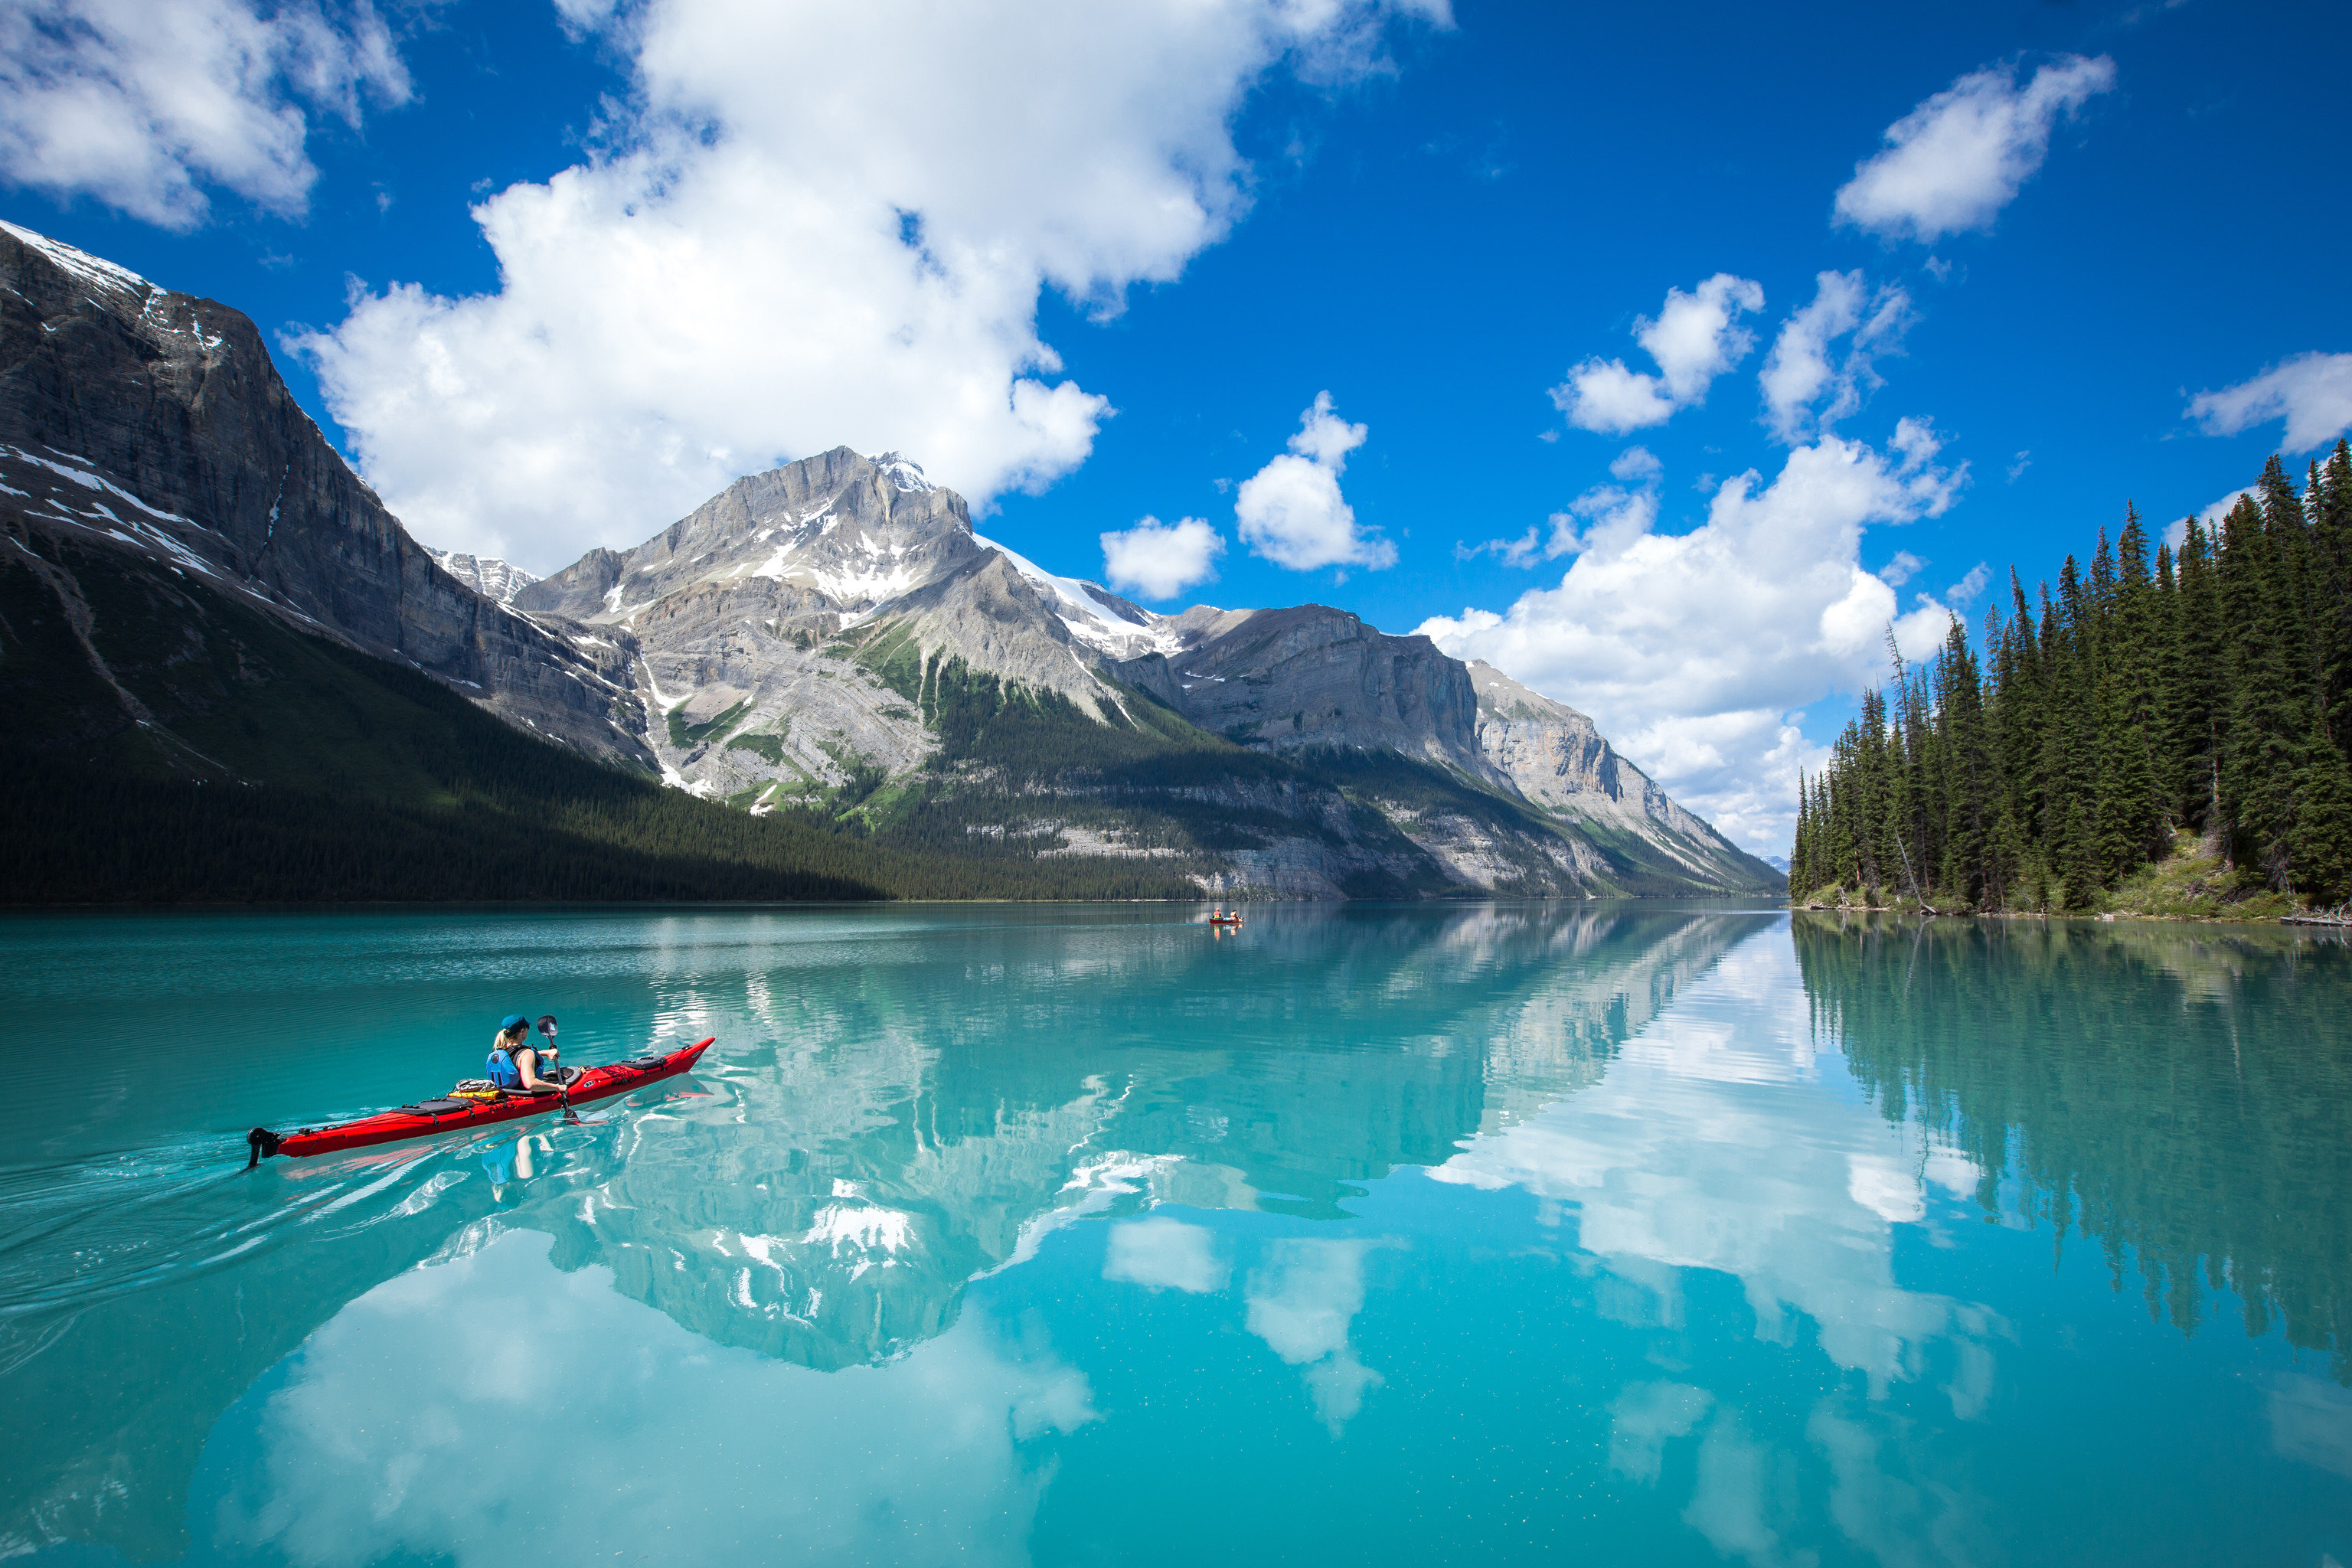 Mountains + Skiing National Parks Outdoors + Adventure Trip Ideas Weekend Getaways sky water mountain mountainous landforms outdoor Nature Lake mountain range reflection water sport fjord loch vehicle boating alps glacial landform swimming